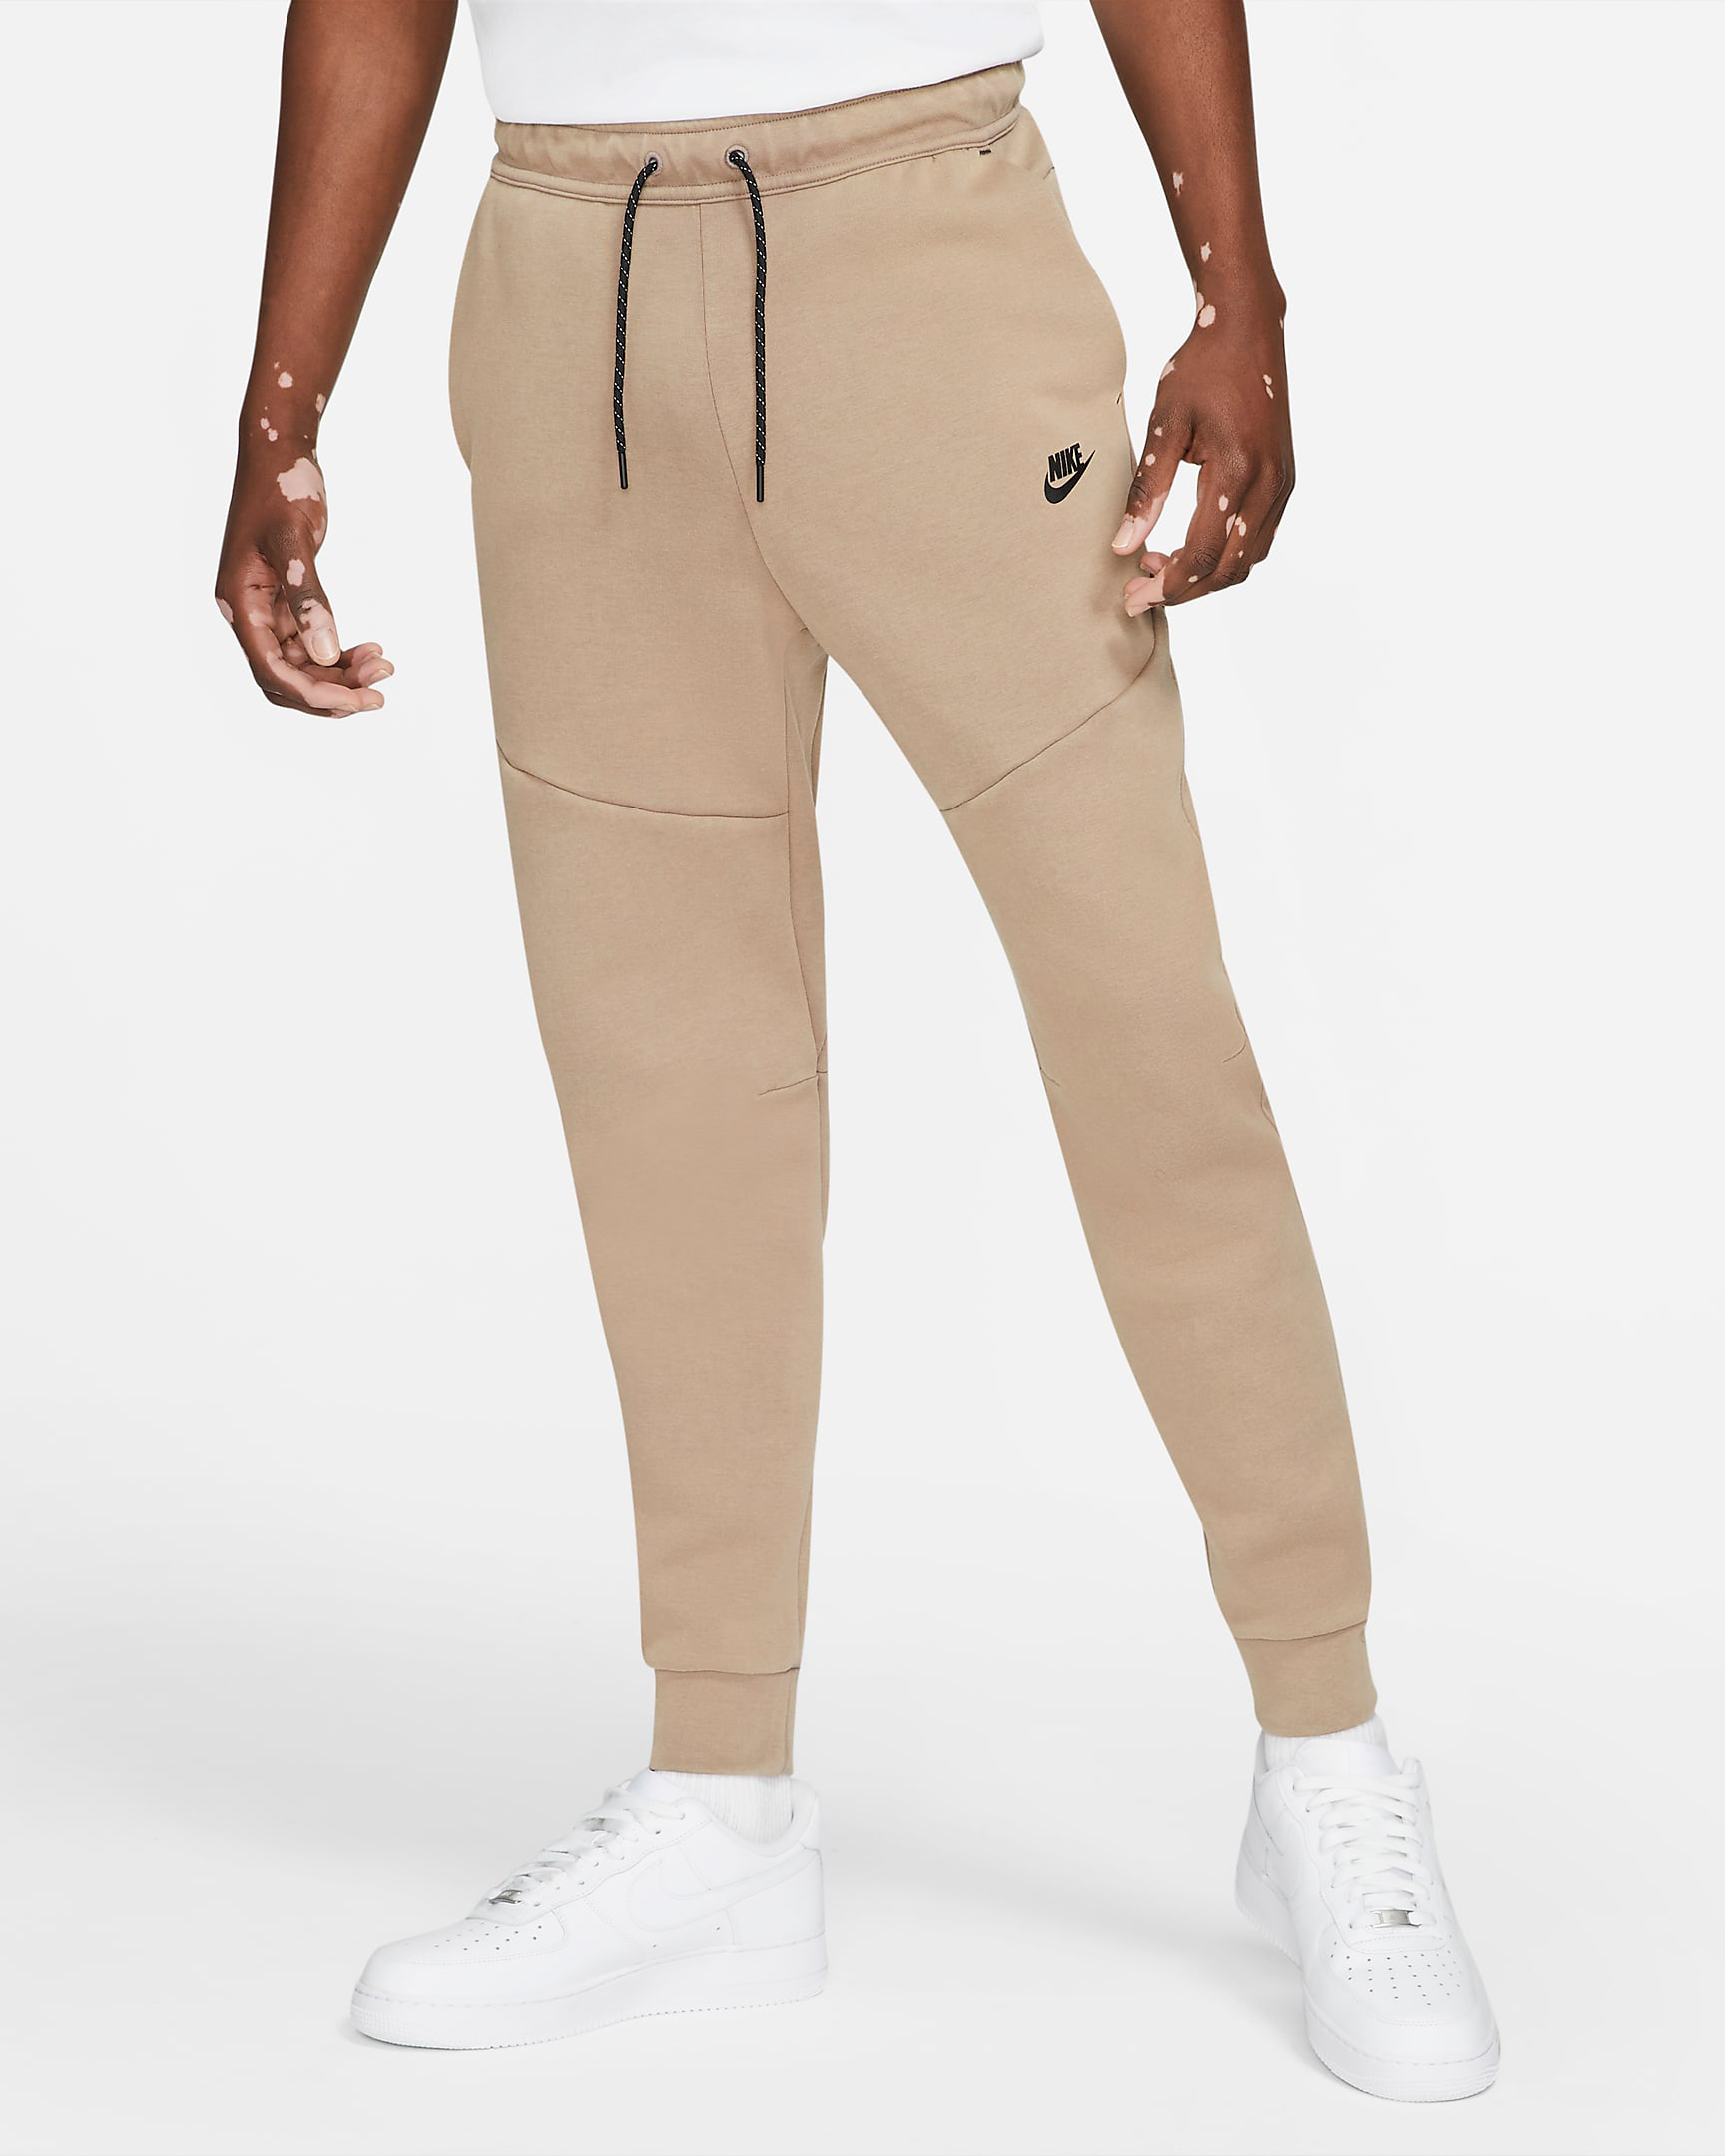 nike-taupe-haze-tech-fleece-jogger-pants-1